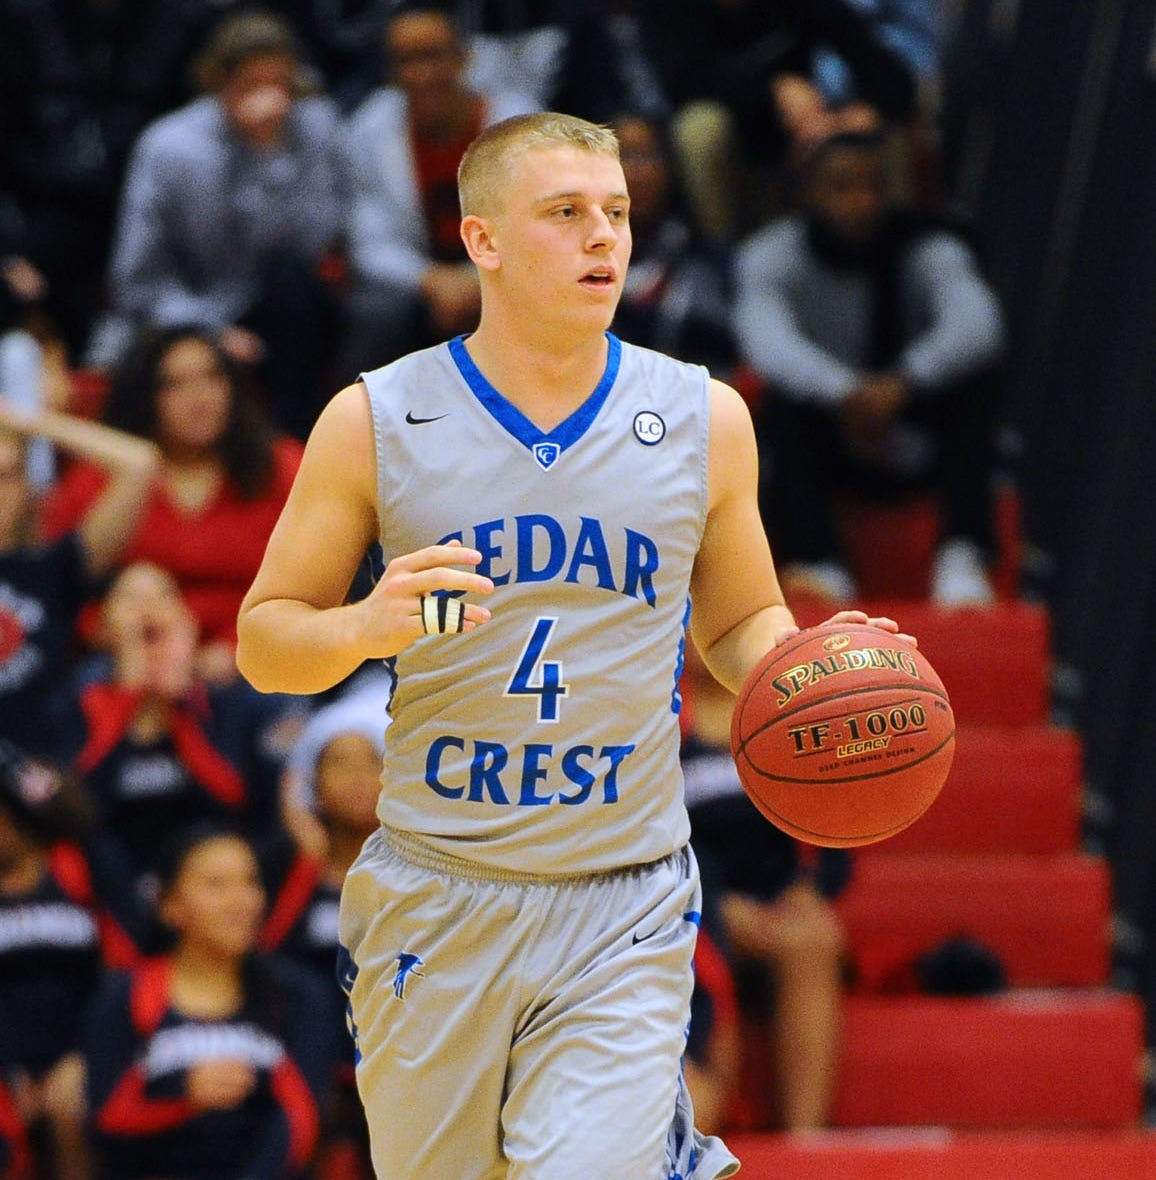 Cedar Crest's Logan Horn poured in 32 points to earn tournament MVP honors and lead the Falcons to a 53-43 win over Lebanon last Saturday night.